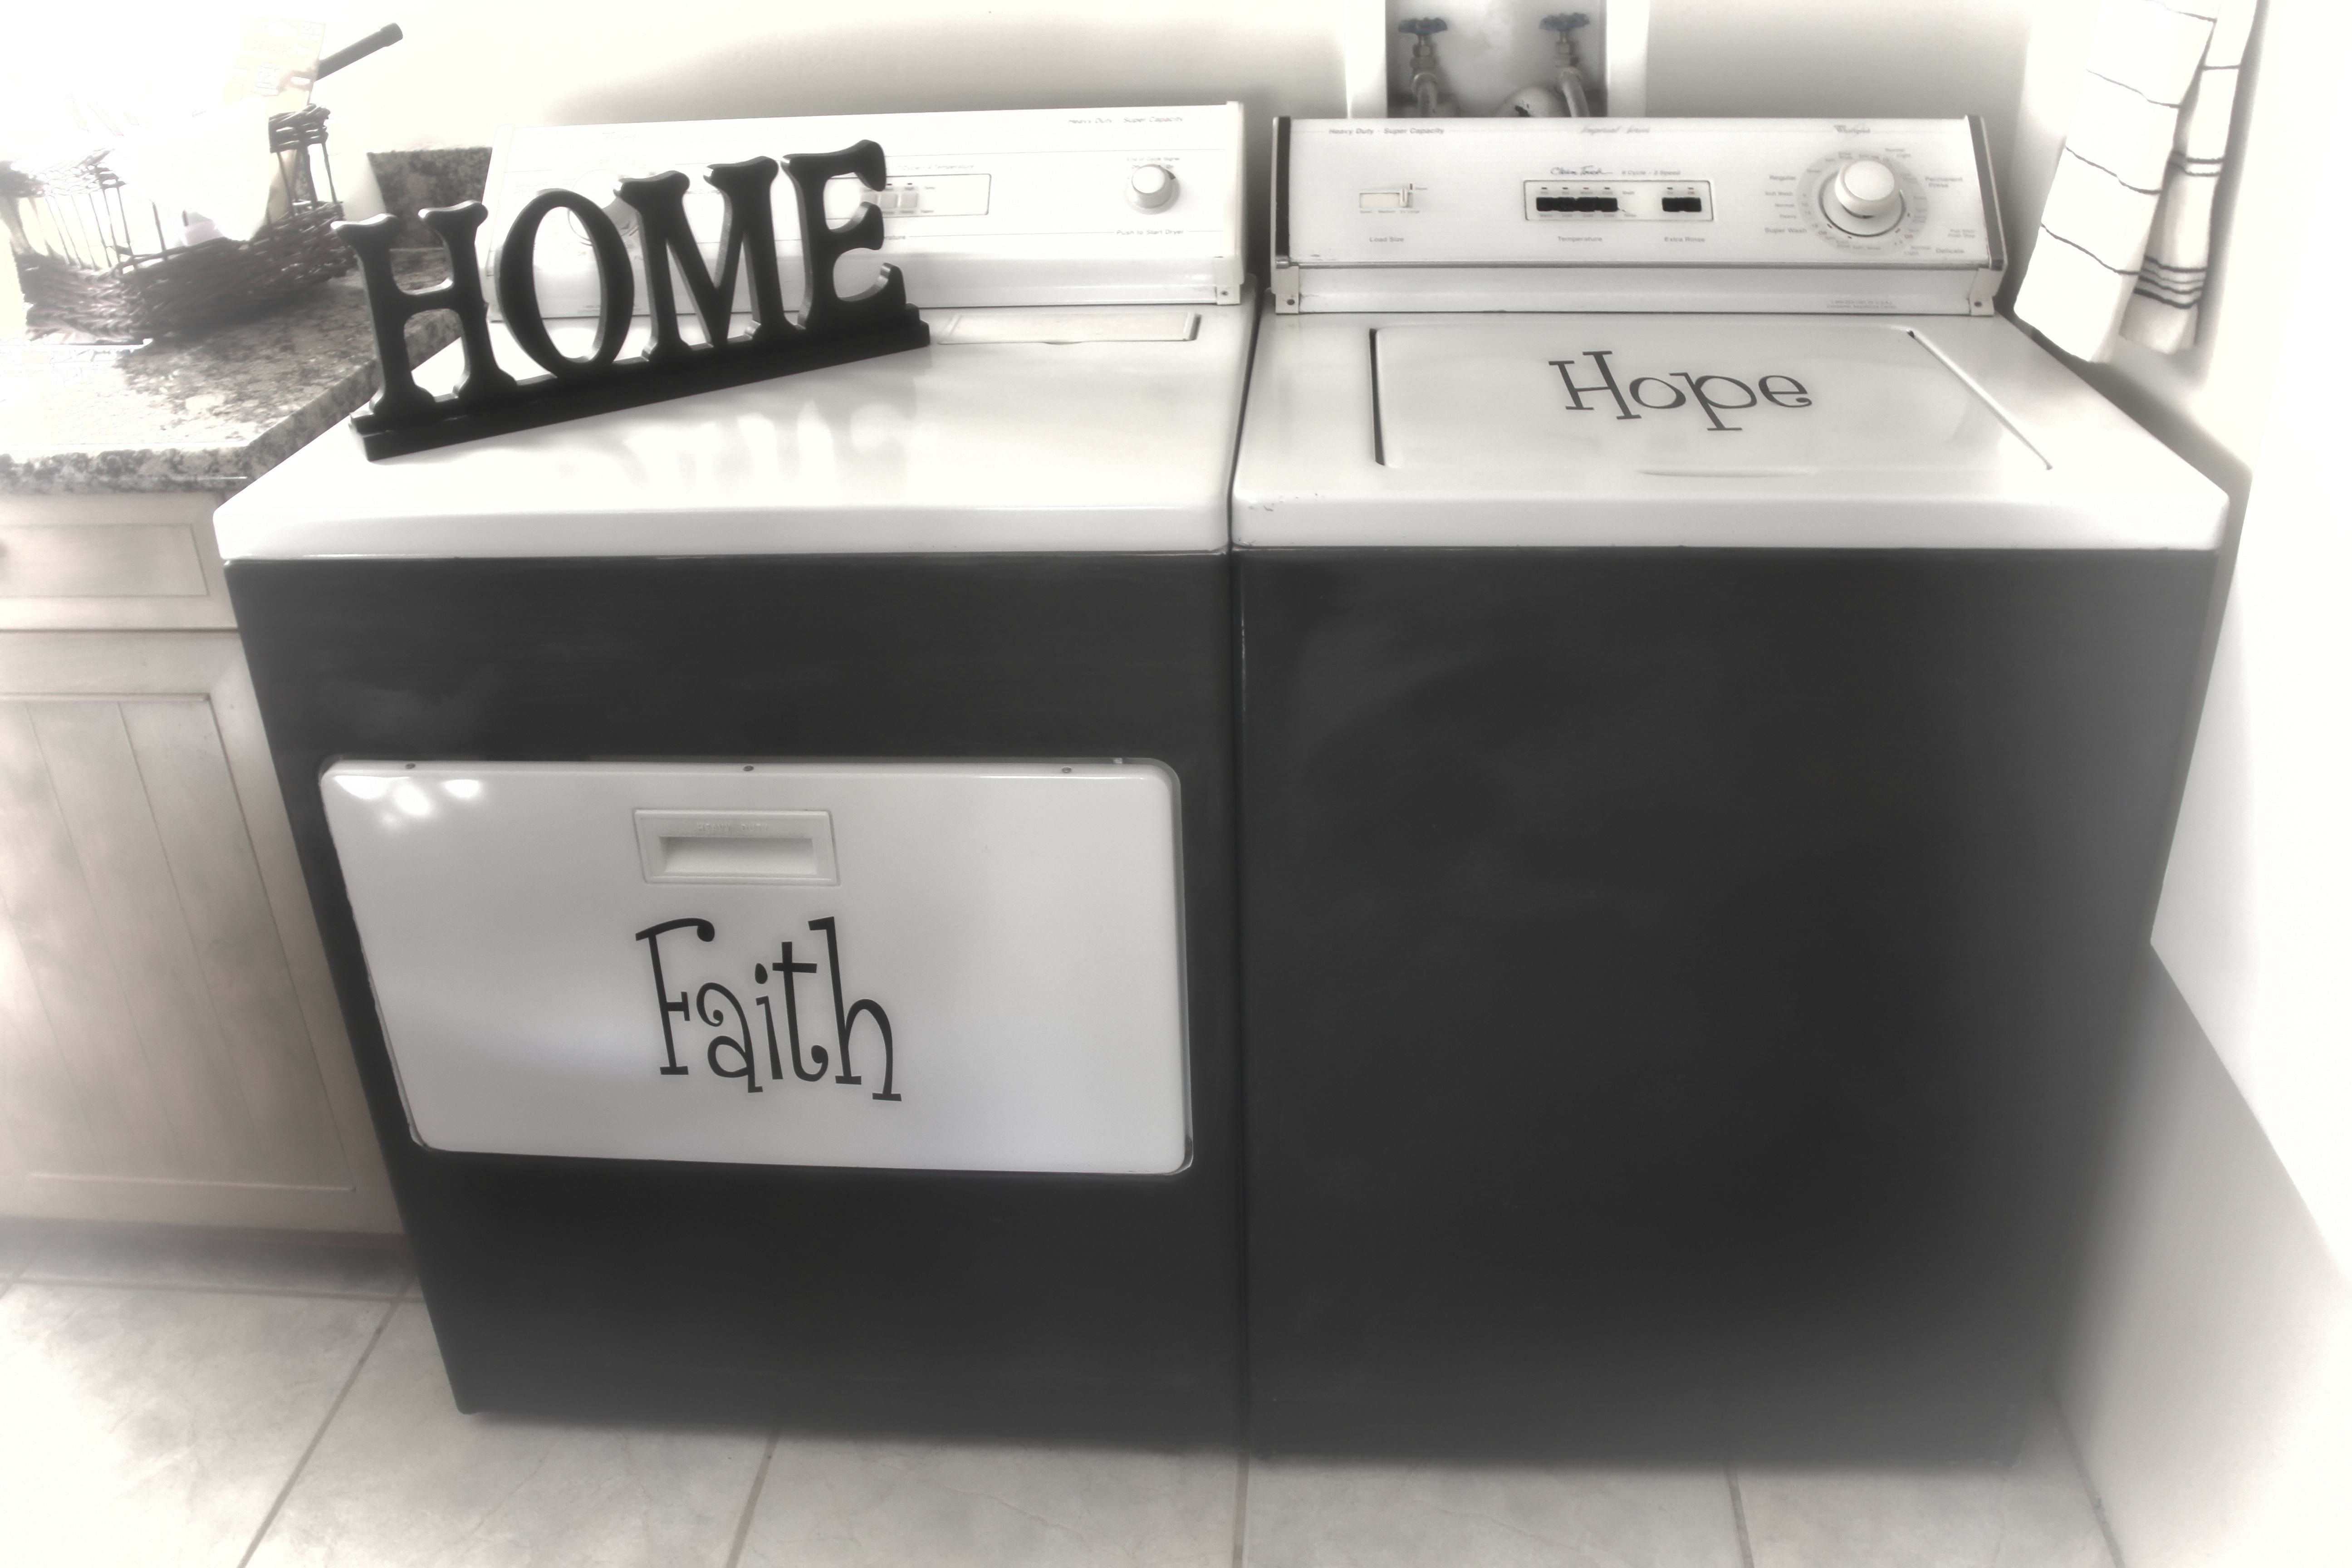 Washer And Dryer Makeover Painted With Chalk Paint And Wording